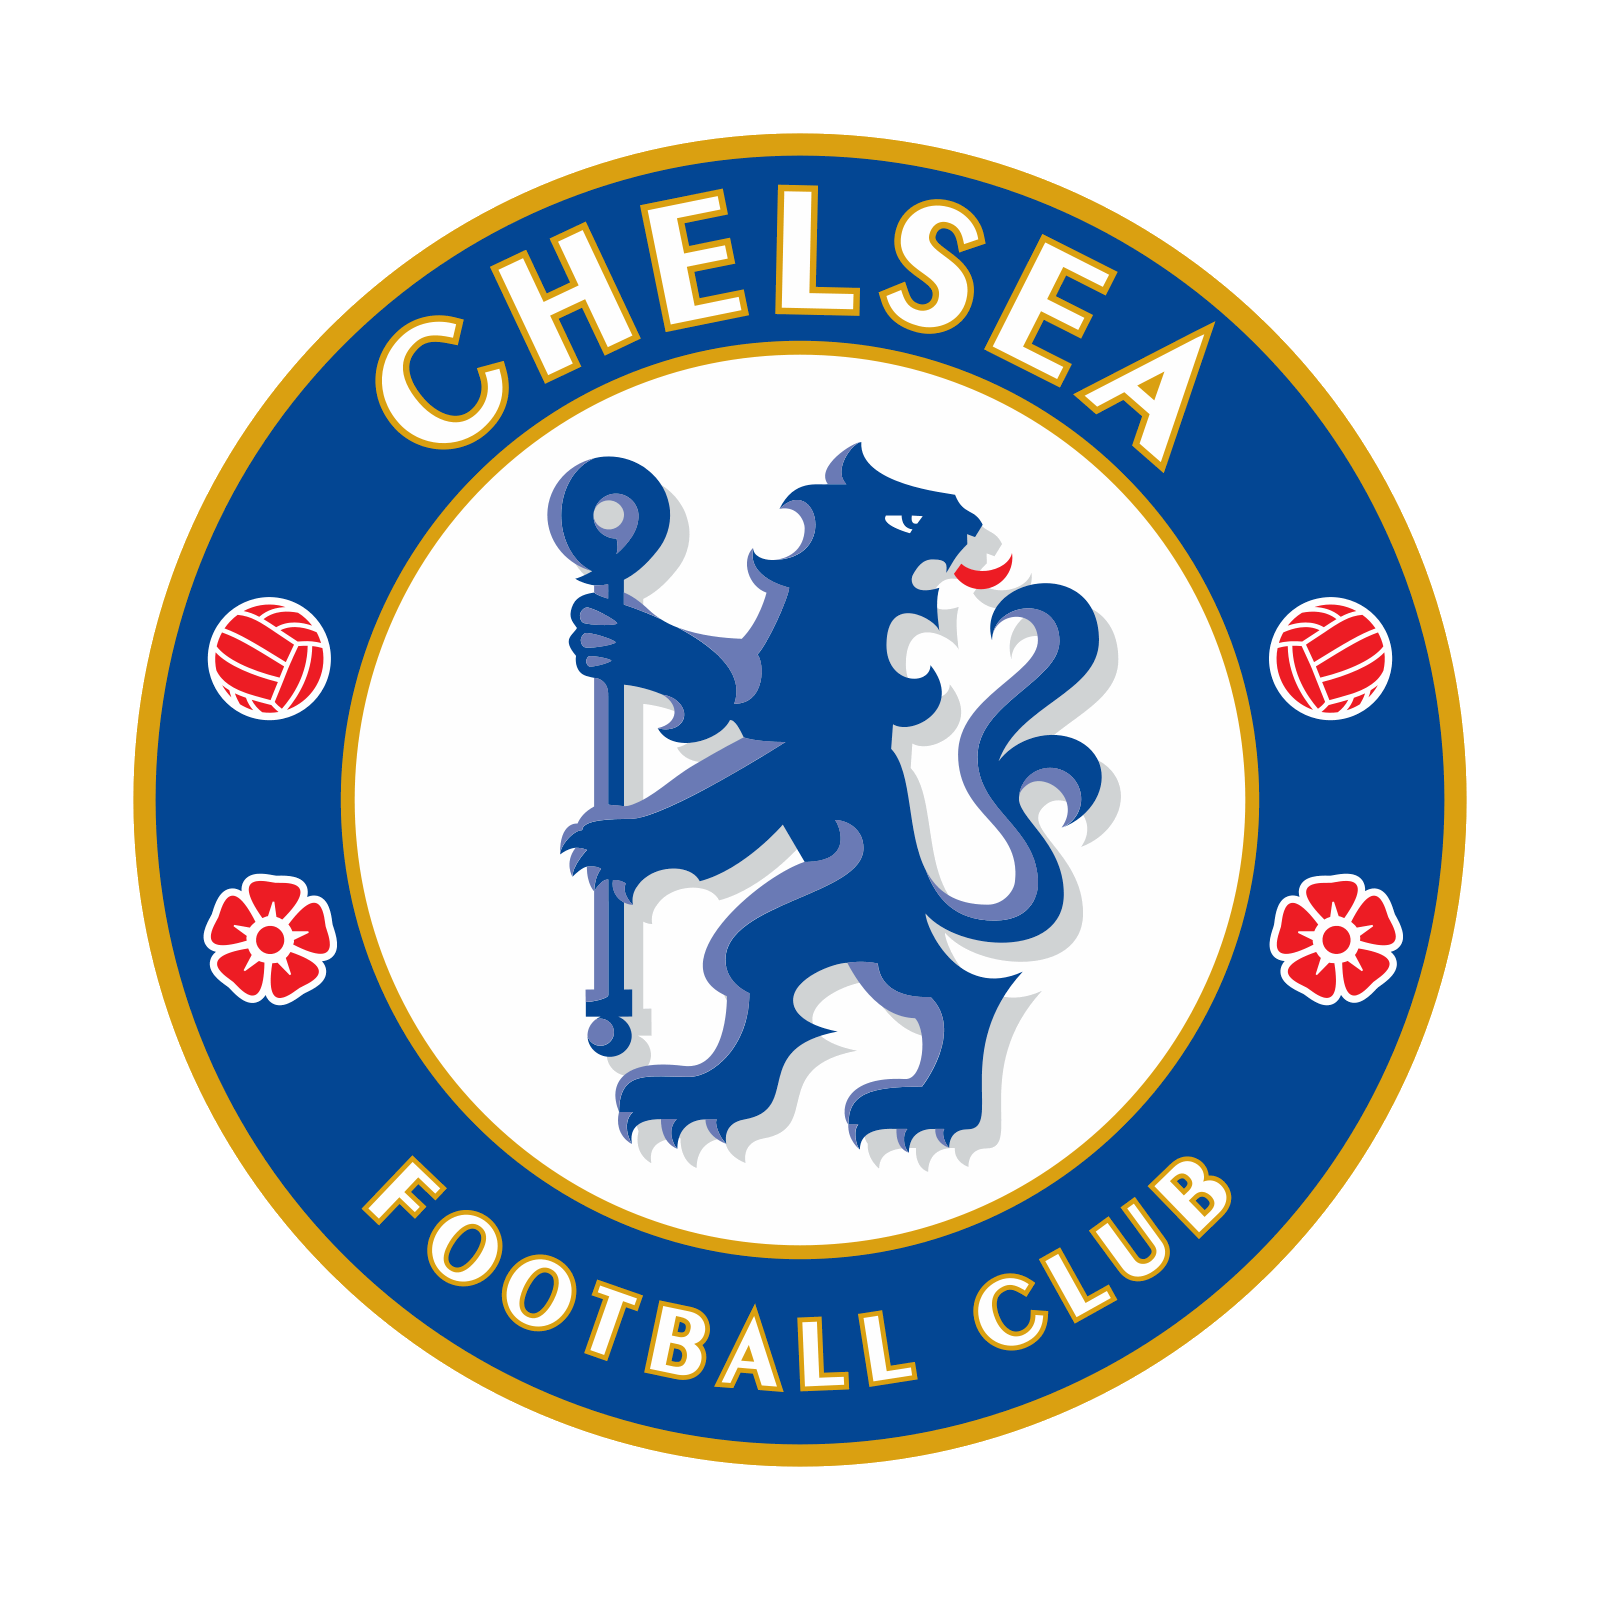 Chelsea badge png. Fc cones download gratuito